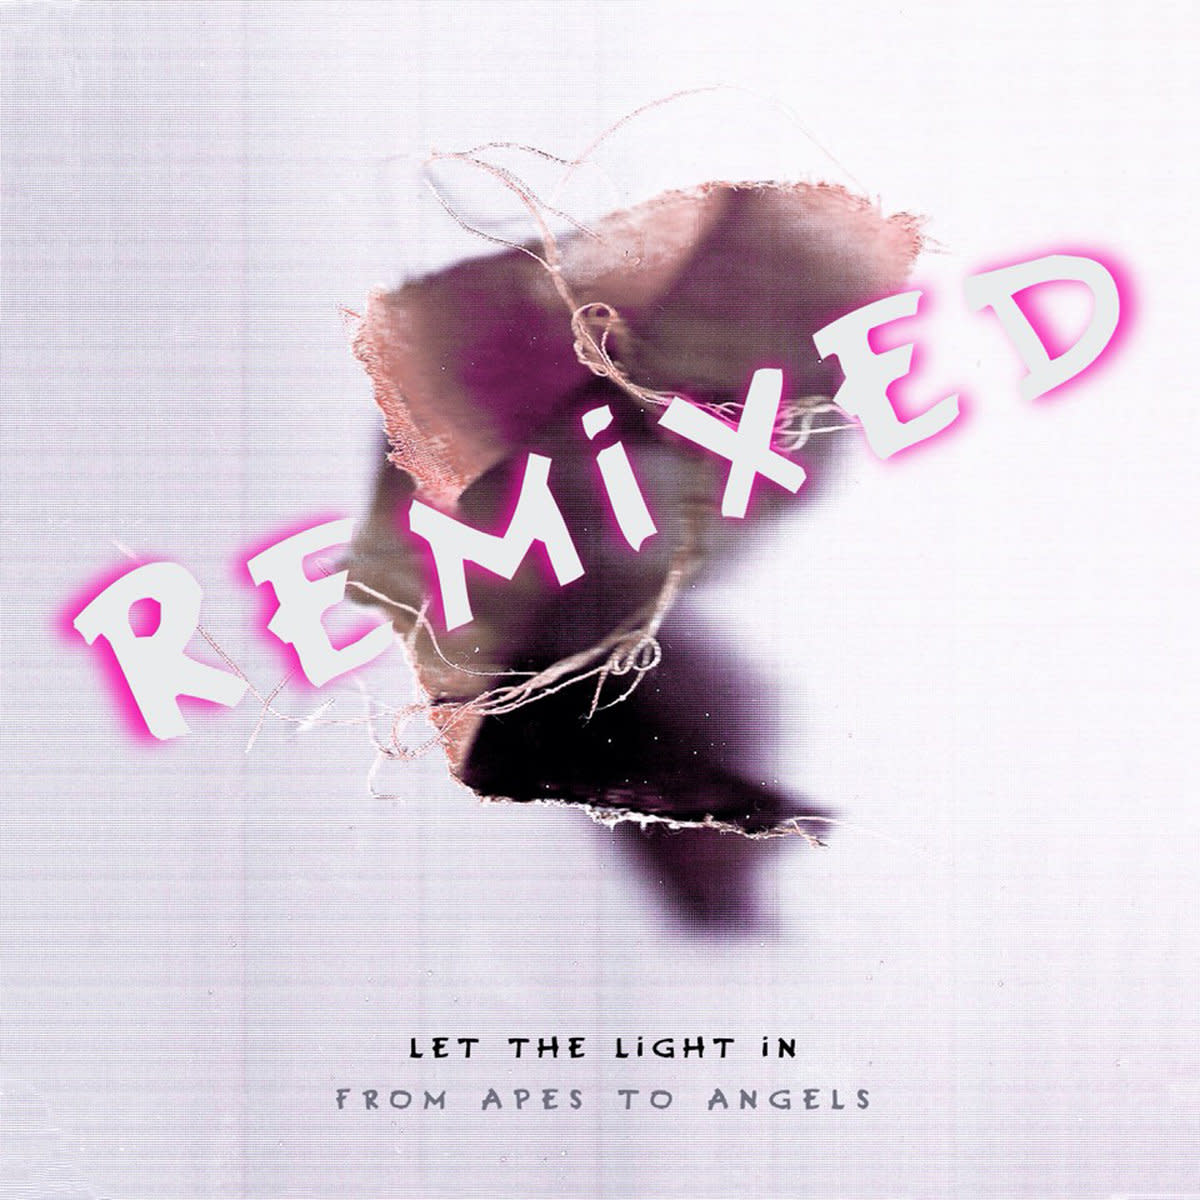 synth-album-review-let-the-light-in-remixed-by-from-apes-to-angels-and-guests